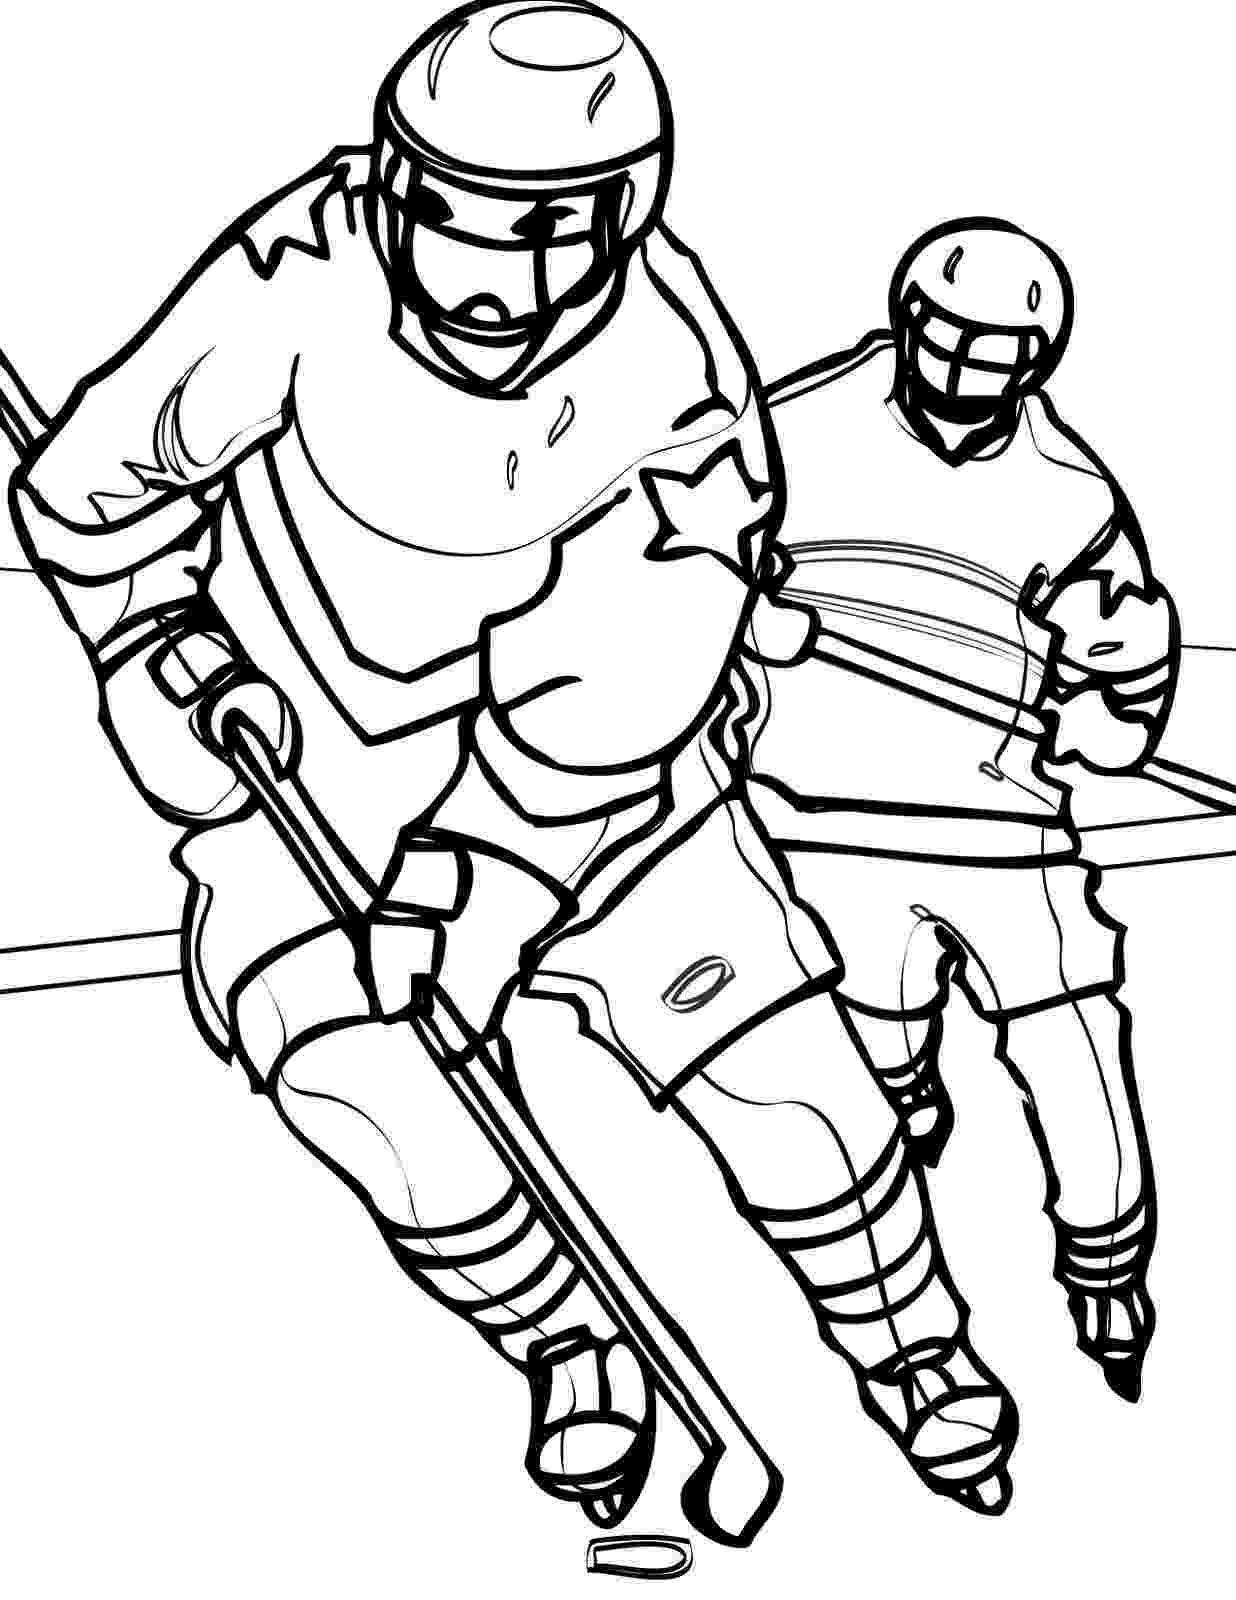 hockey pictures to color hockey coloring pages learn to coloring pictures hockey to color